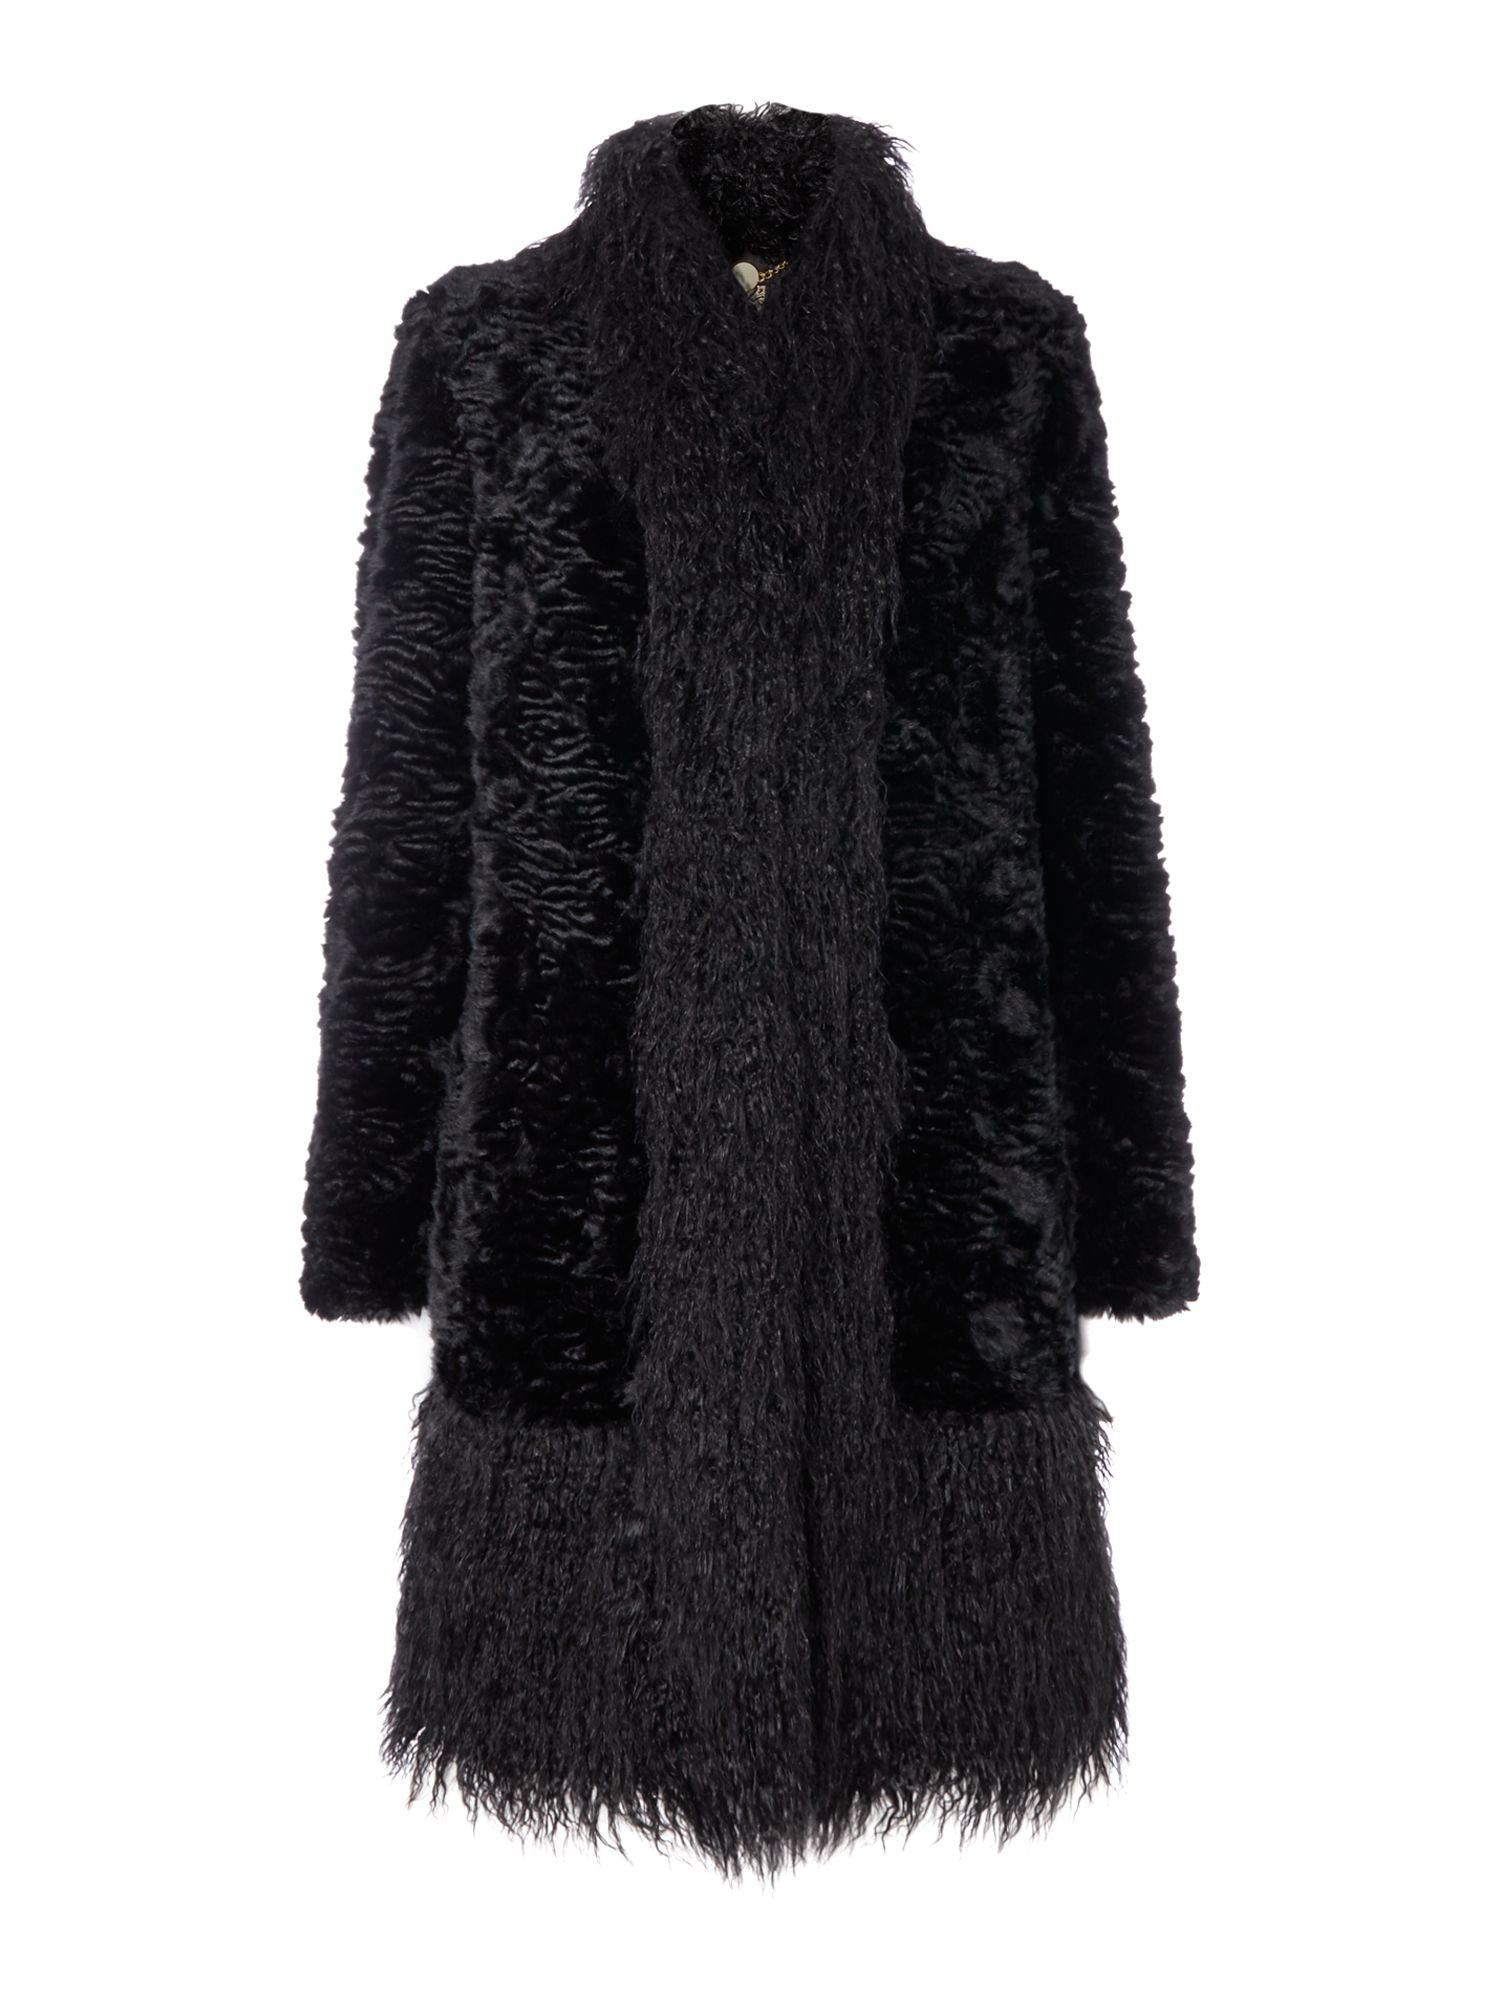 Looking for wholesale bulk discount faux fur coat cheap online drop shipping? salestopp1se.gq offers a large selection of discount cheap faux fur coat at a fraction of the retail price.